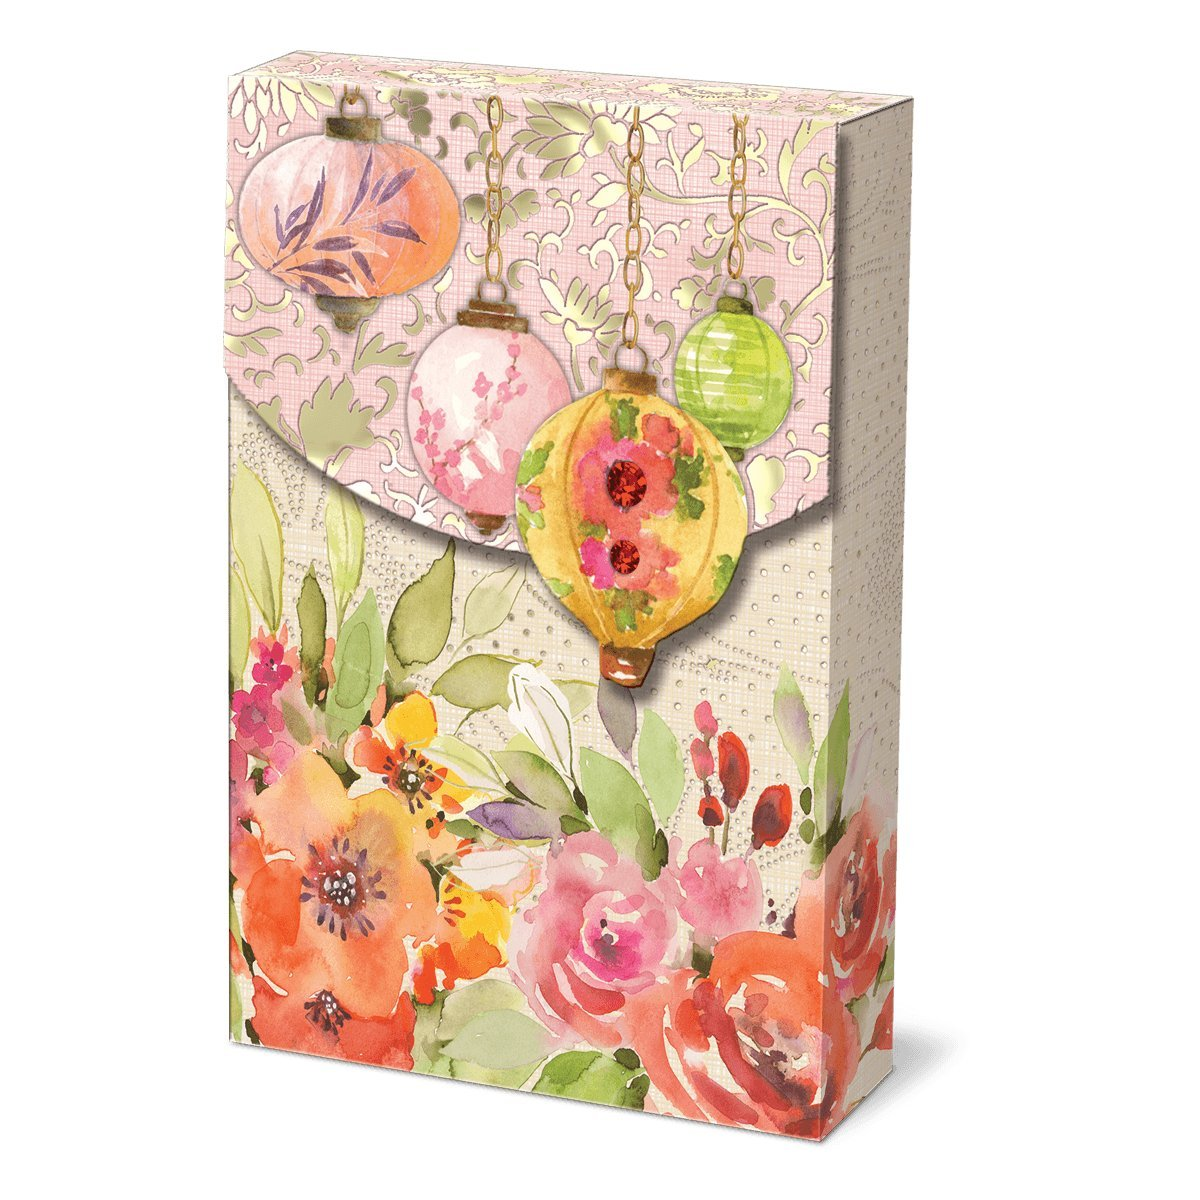 Punch Studio, Royal Peacocks, Decorative Pouch Note Cards, Set of 10 57938